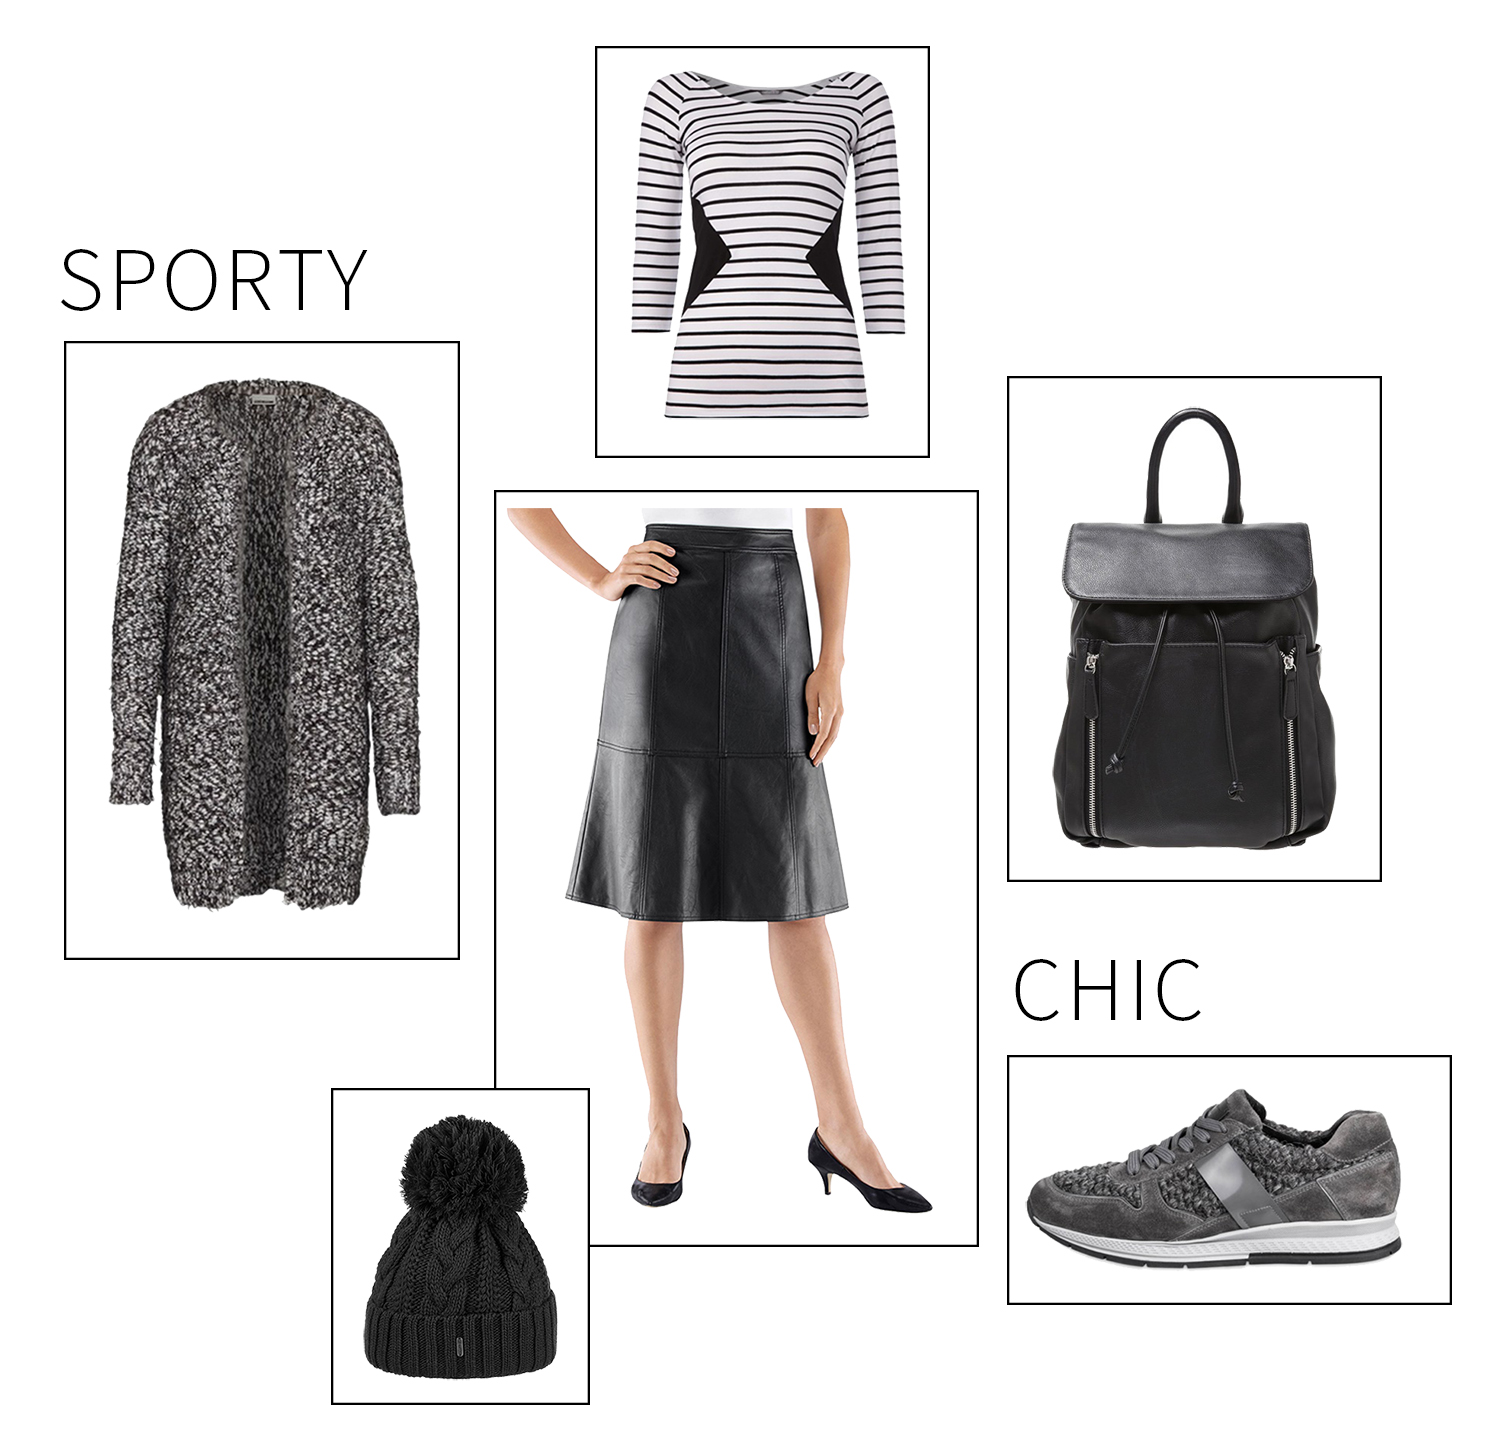 Advance Your Style, Modeblog, Berlin, Deutschland, Fashionblog, Mix & Match, Outfit, Kombinieren, Modetipp, Trend, Leder Rock, Schwarz, Witt Weiden, Titelbild, sporty chic, graue Sneaker in Strick Optik, schwarzer Lederrucksack, schwarze Strickmütze mit Bommel